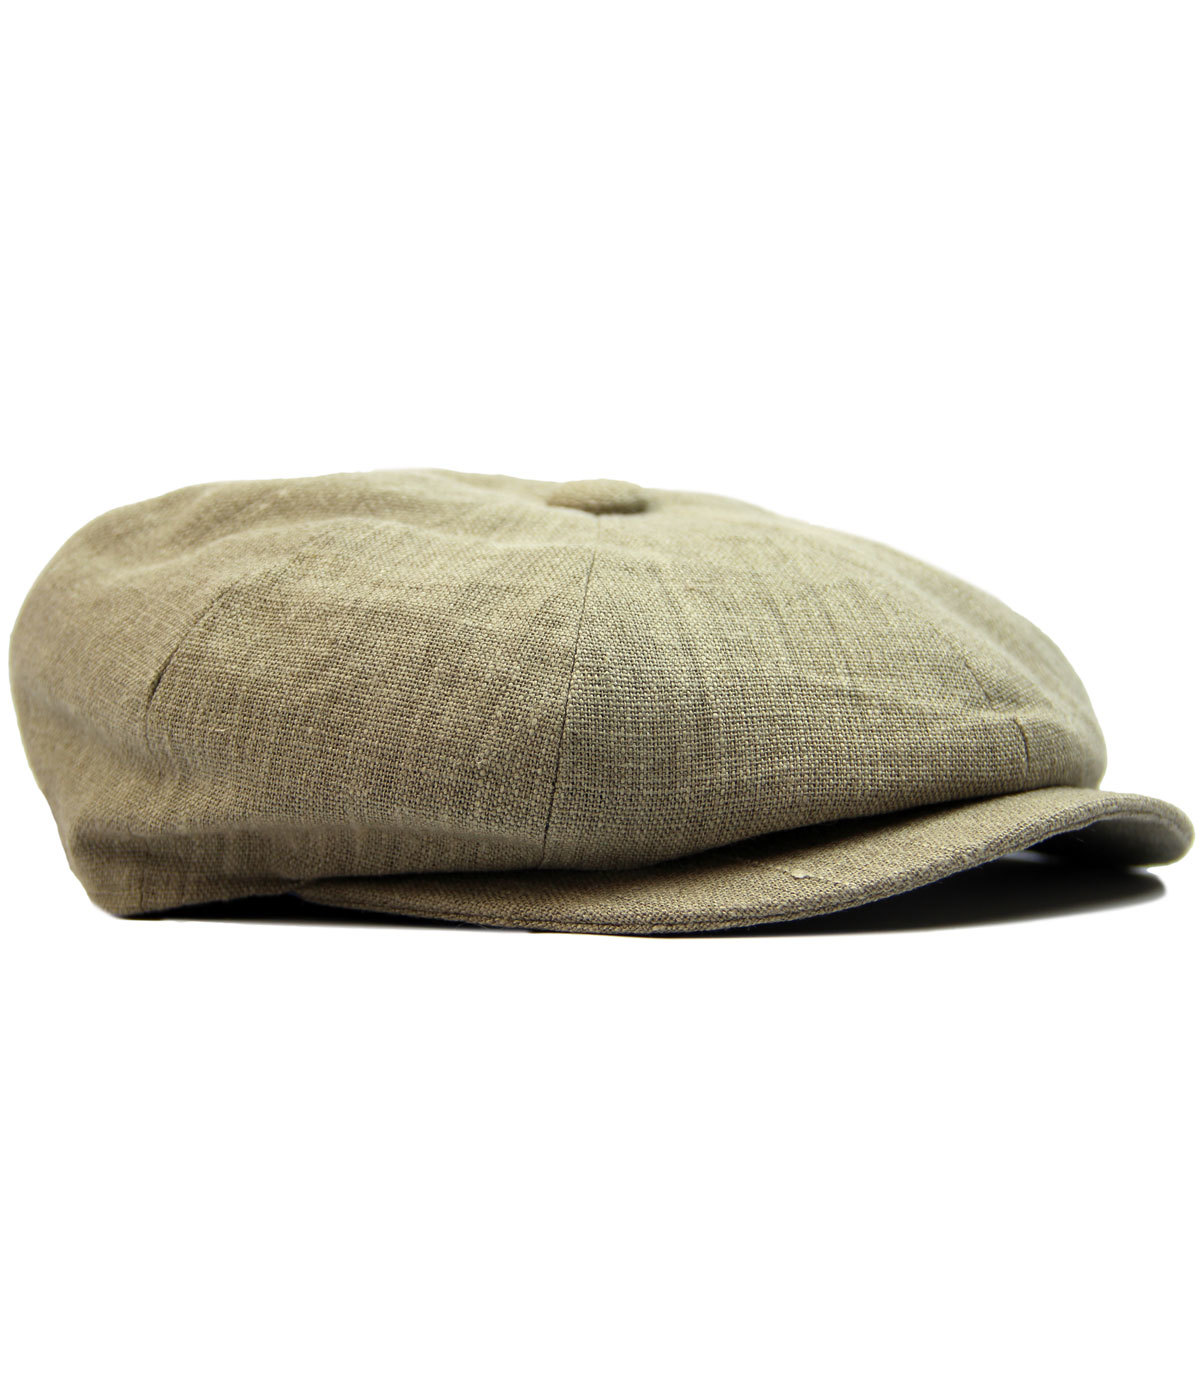 Alfie FAILSWORTH Irish Linen 8 Panel Gatsby Cap B